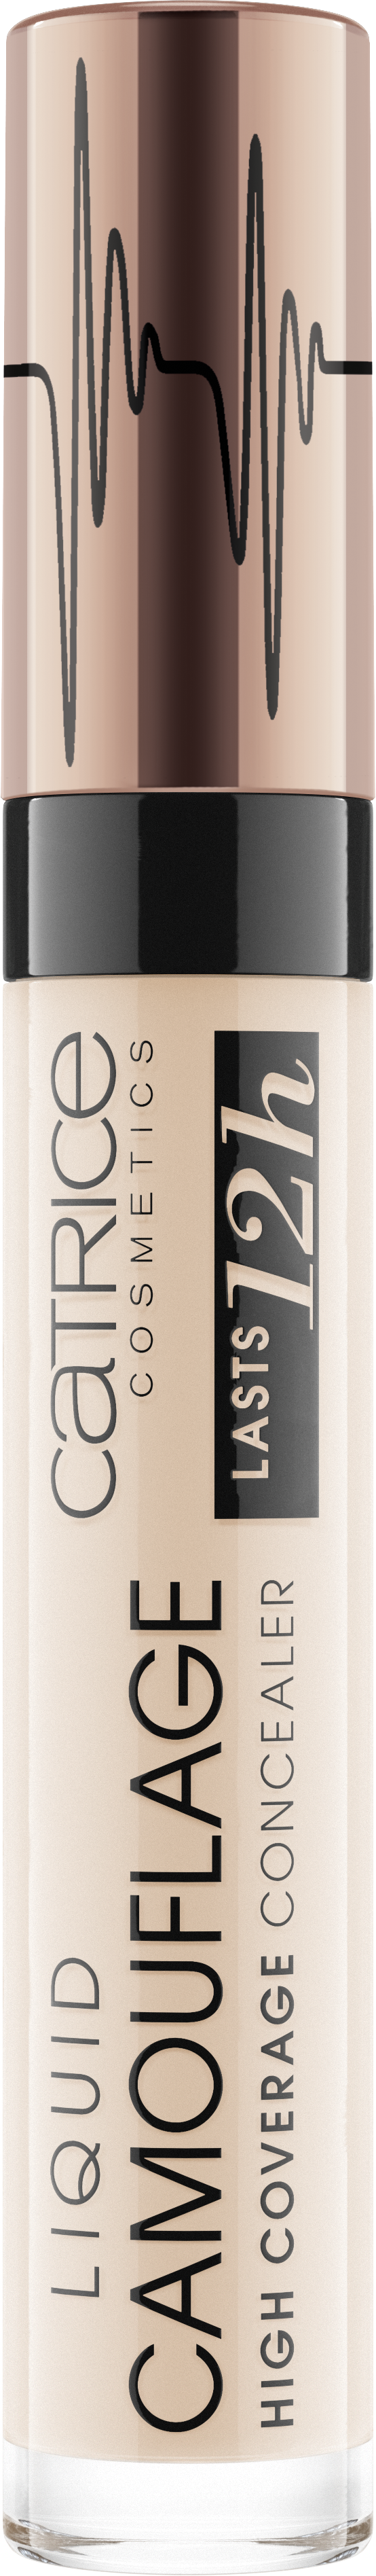 Catrice Our Heartbeat Project Liquid Camouflage High Coverage Concealer.png